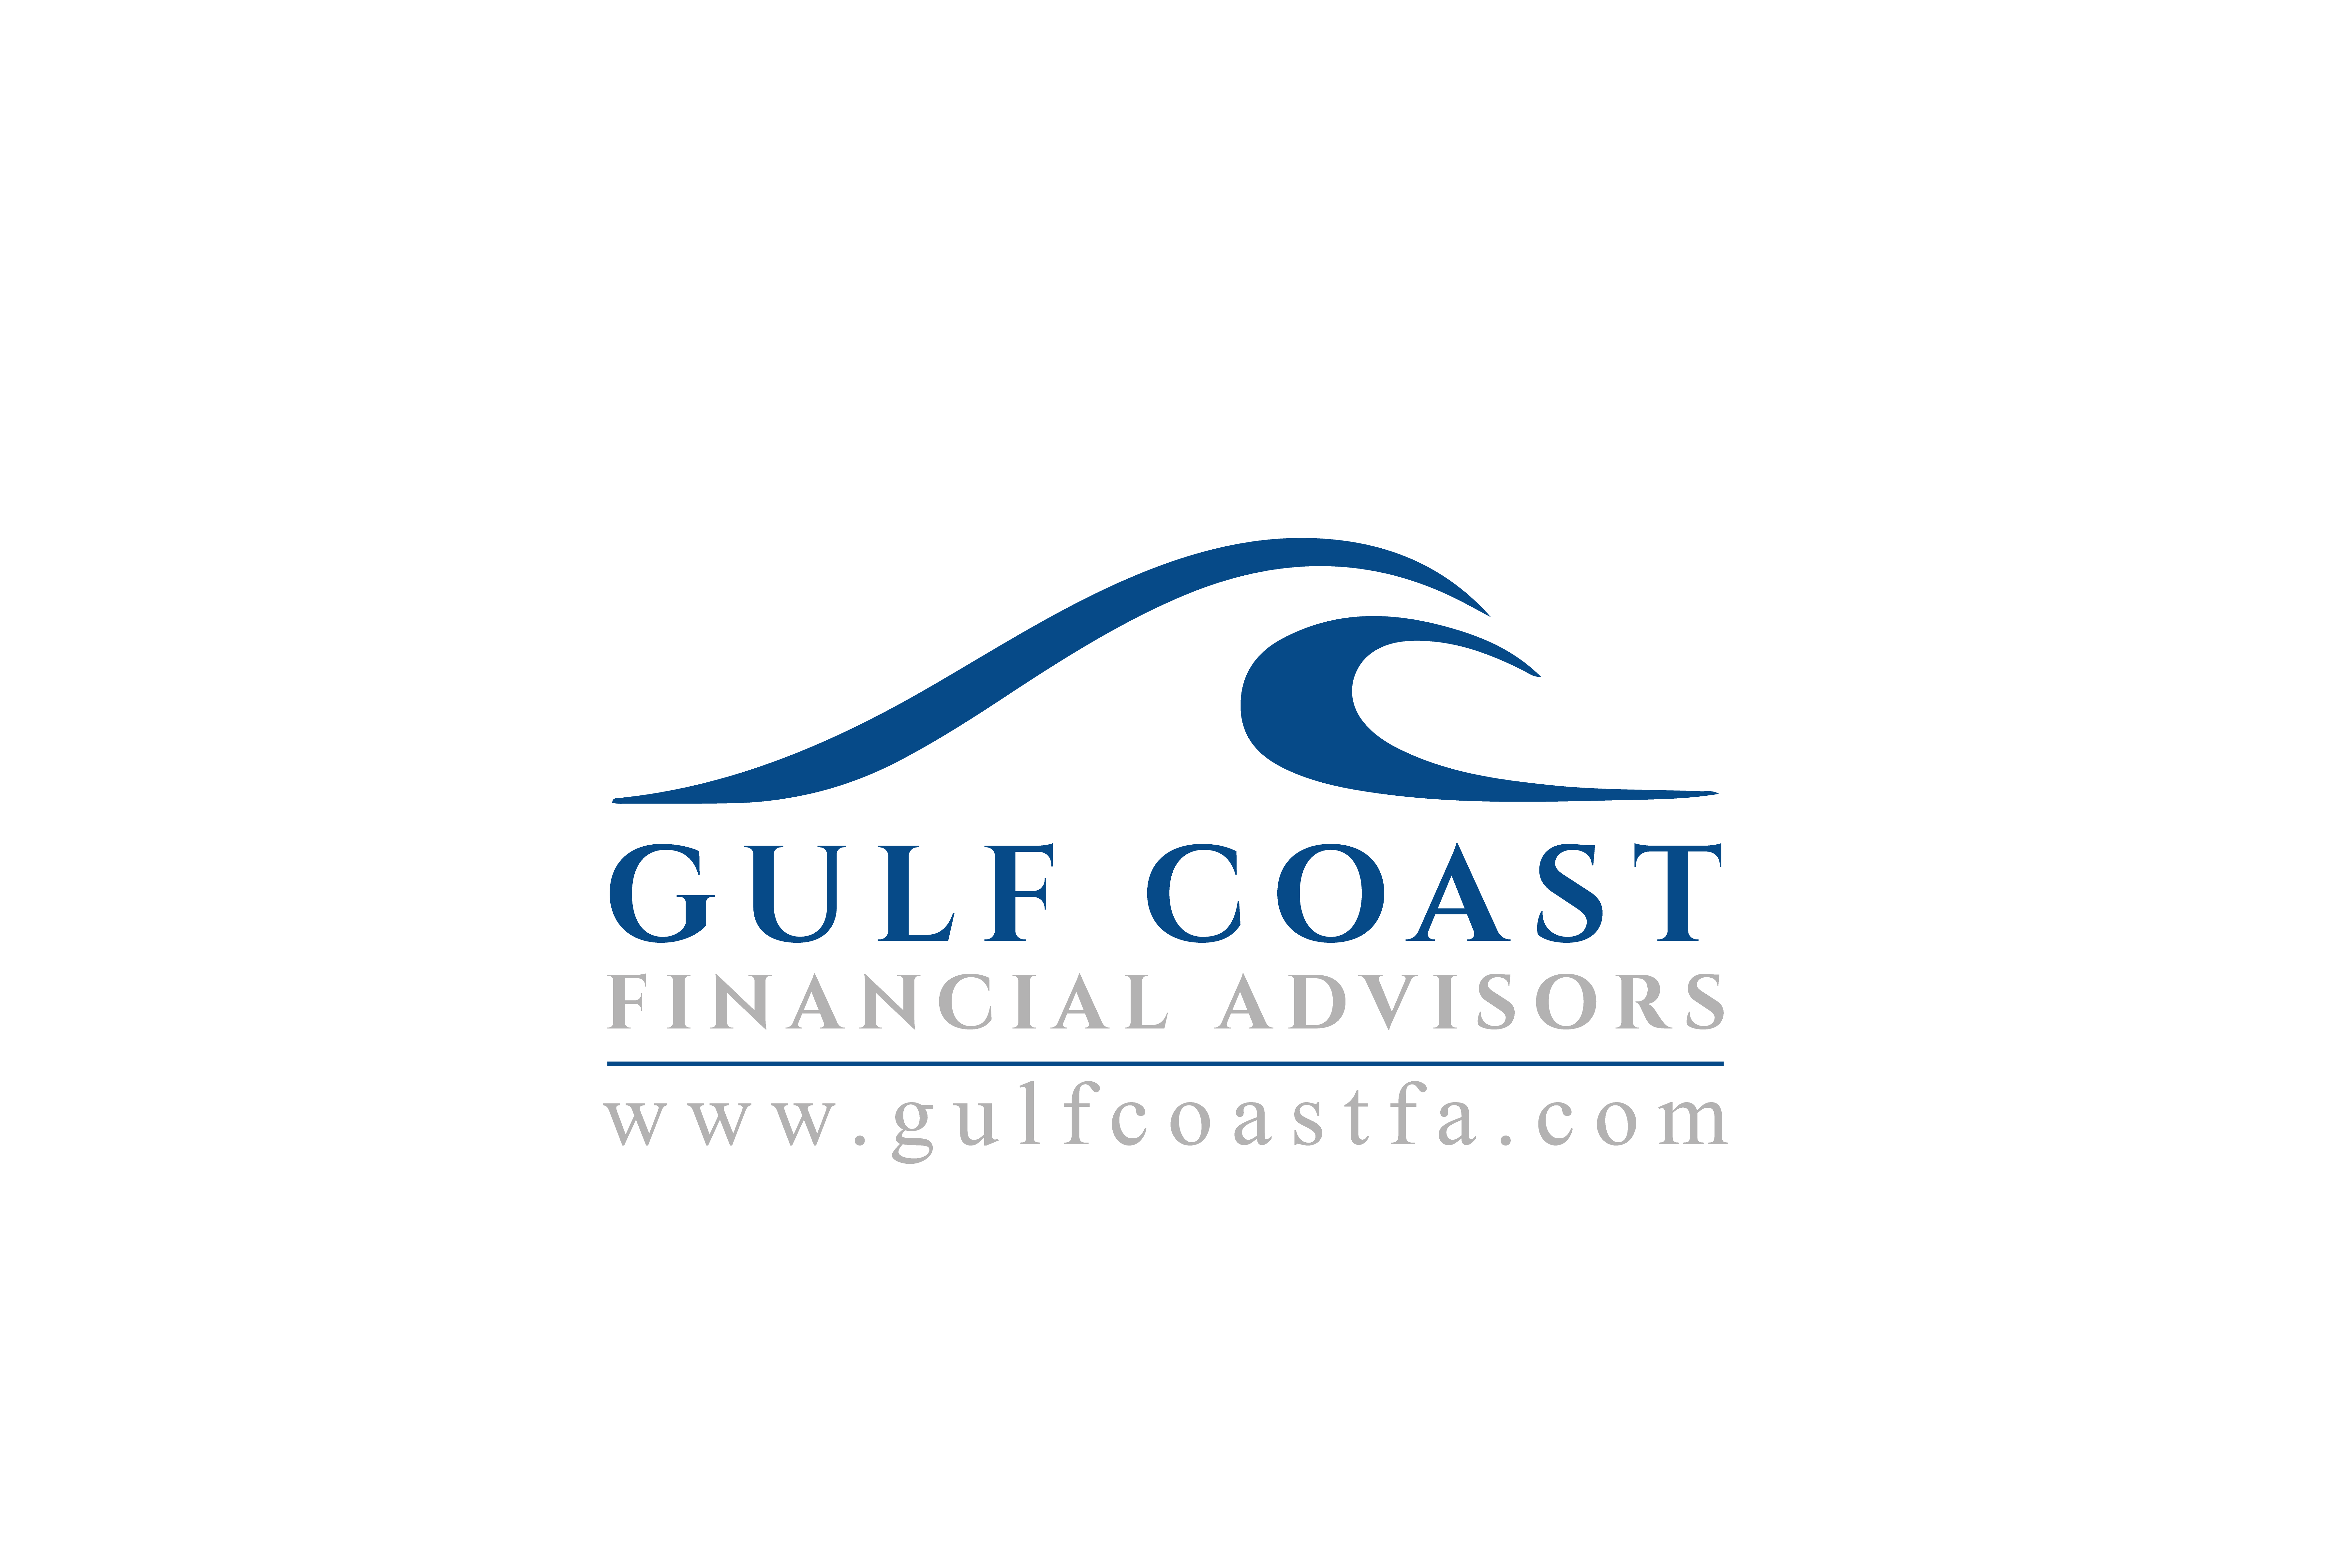 Logo for Gulf Coast Financial Advisors